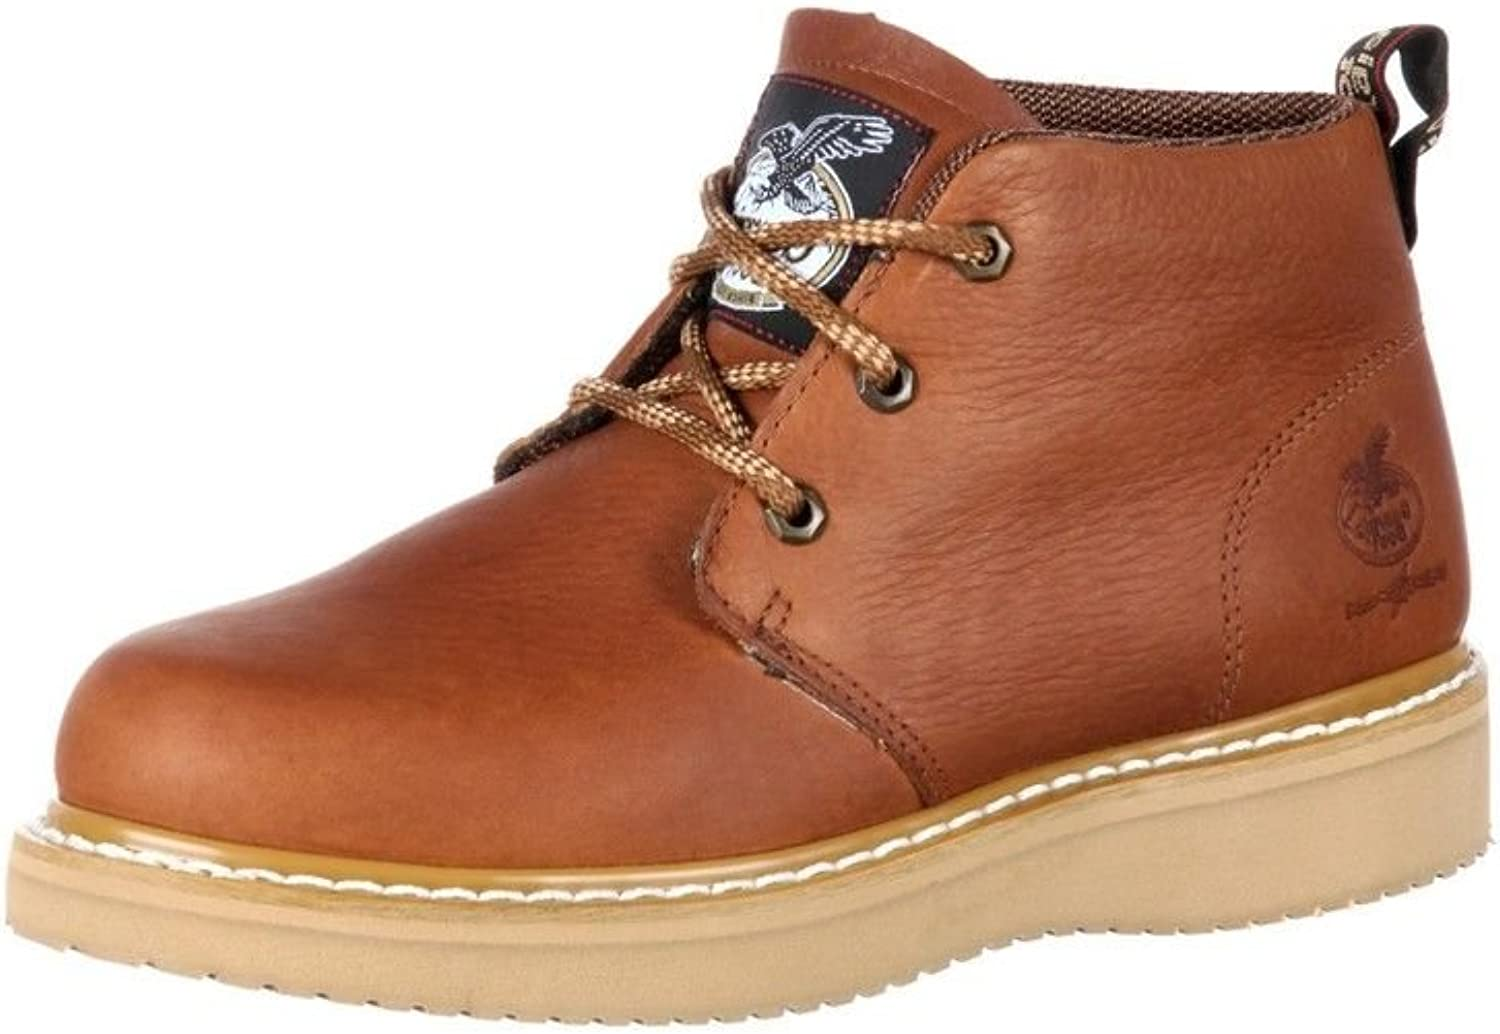 Georgia GB1222 Mans Mans Mans Wedge Chukka Work Boot  presentera alla senaste high street mode